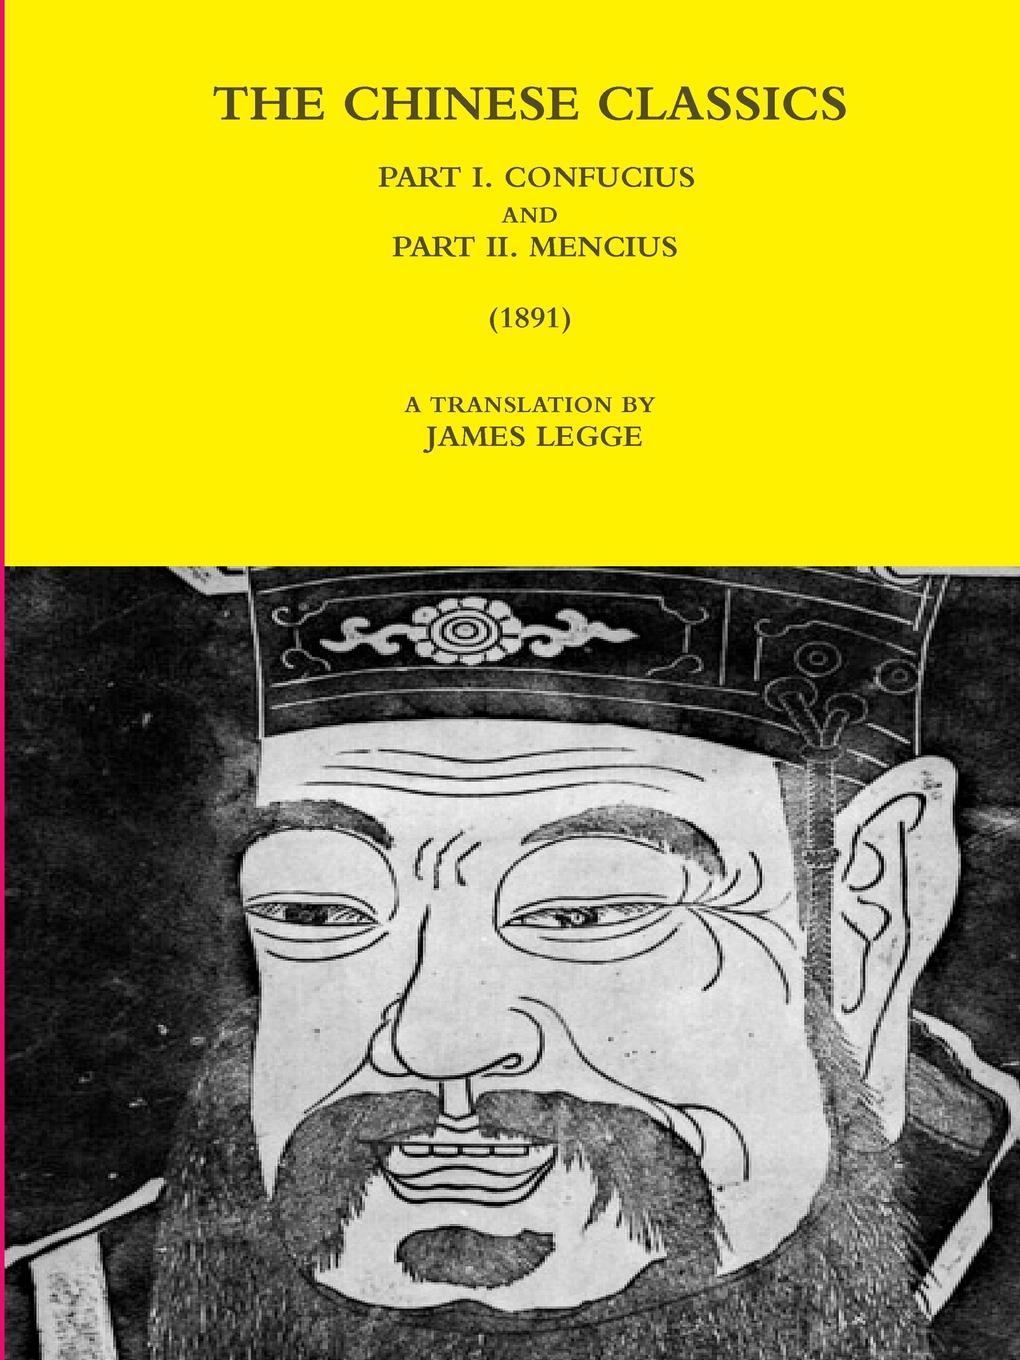 A TRANSLATION BY JAMES LEGGE THE CHINESE CLASSICS - PART I. CONFUCIUS AND PART II. MENCIUS (1891)